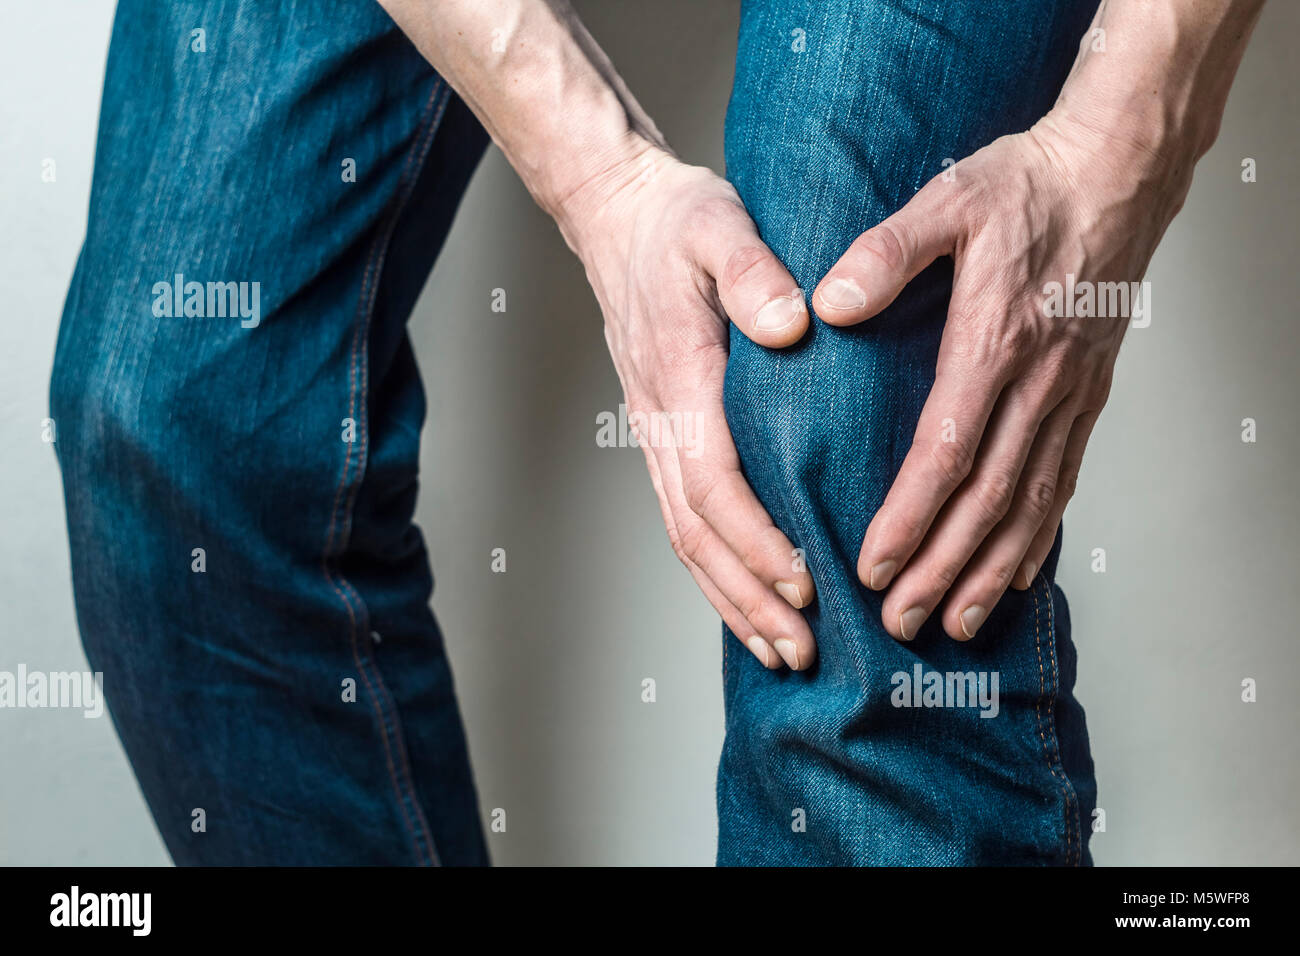 Pain in the knee, meniscus. - Stock Image